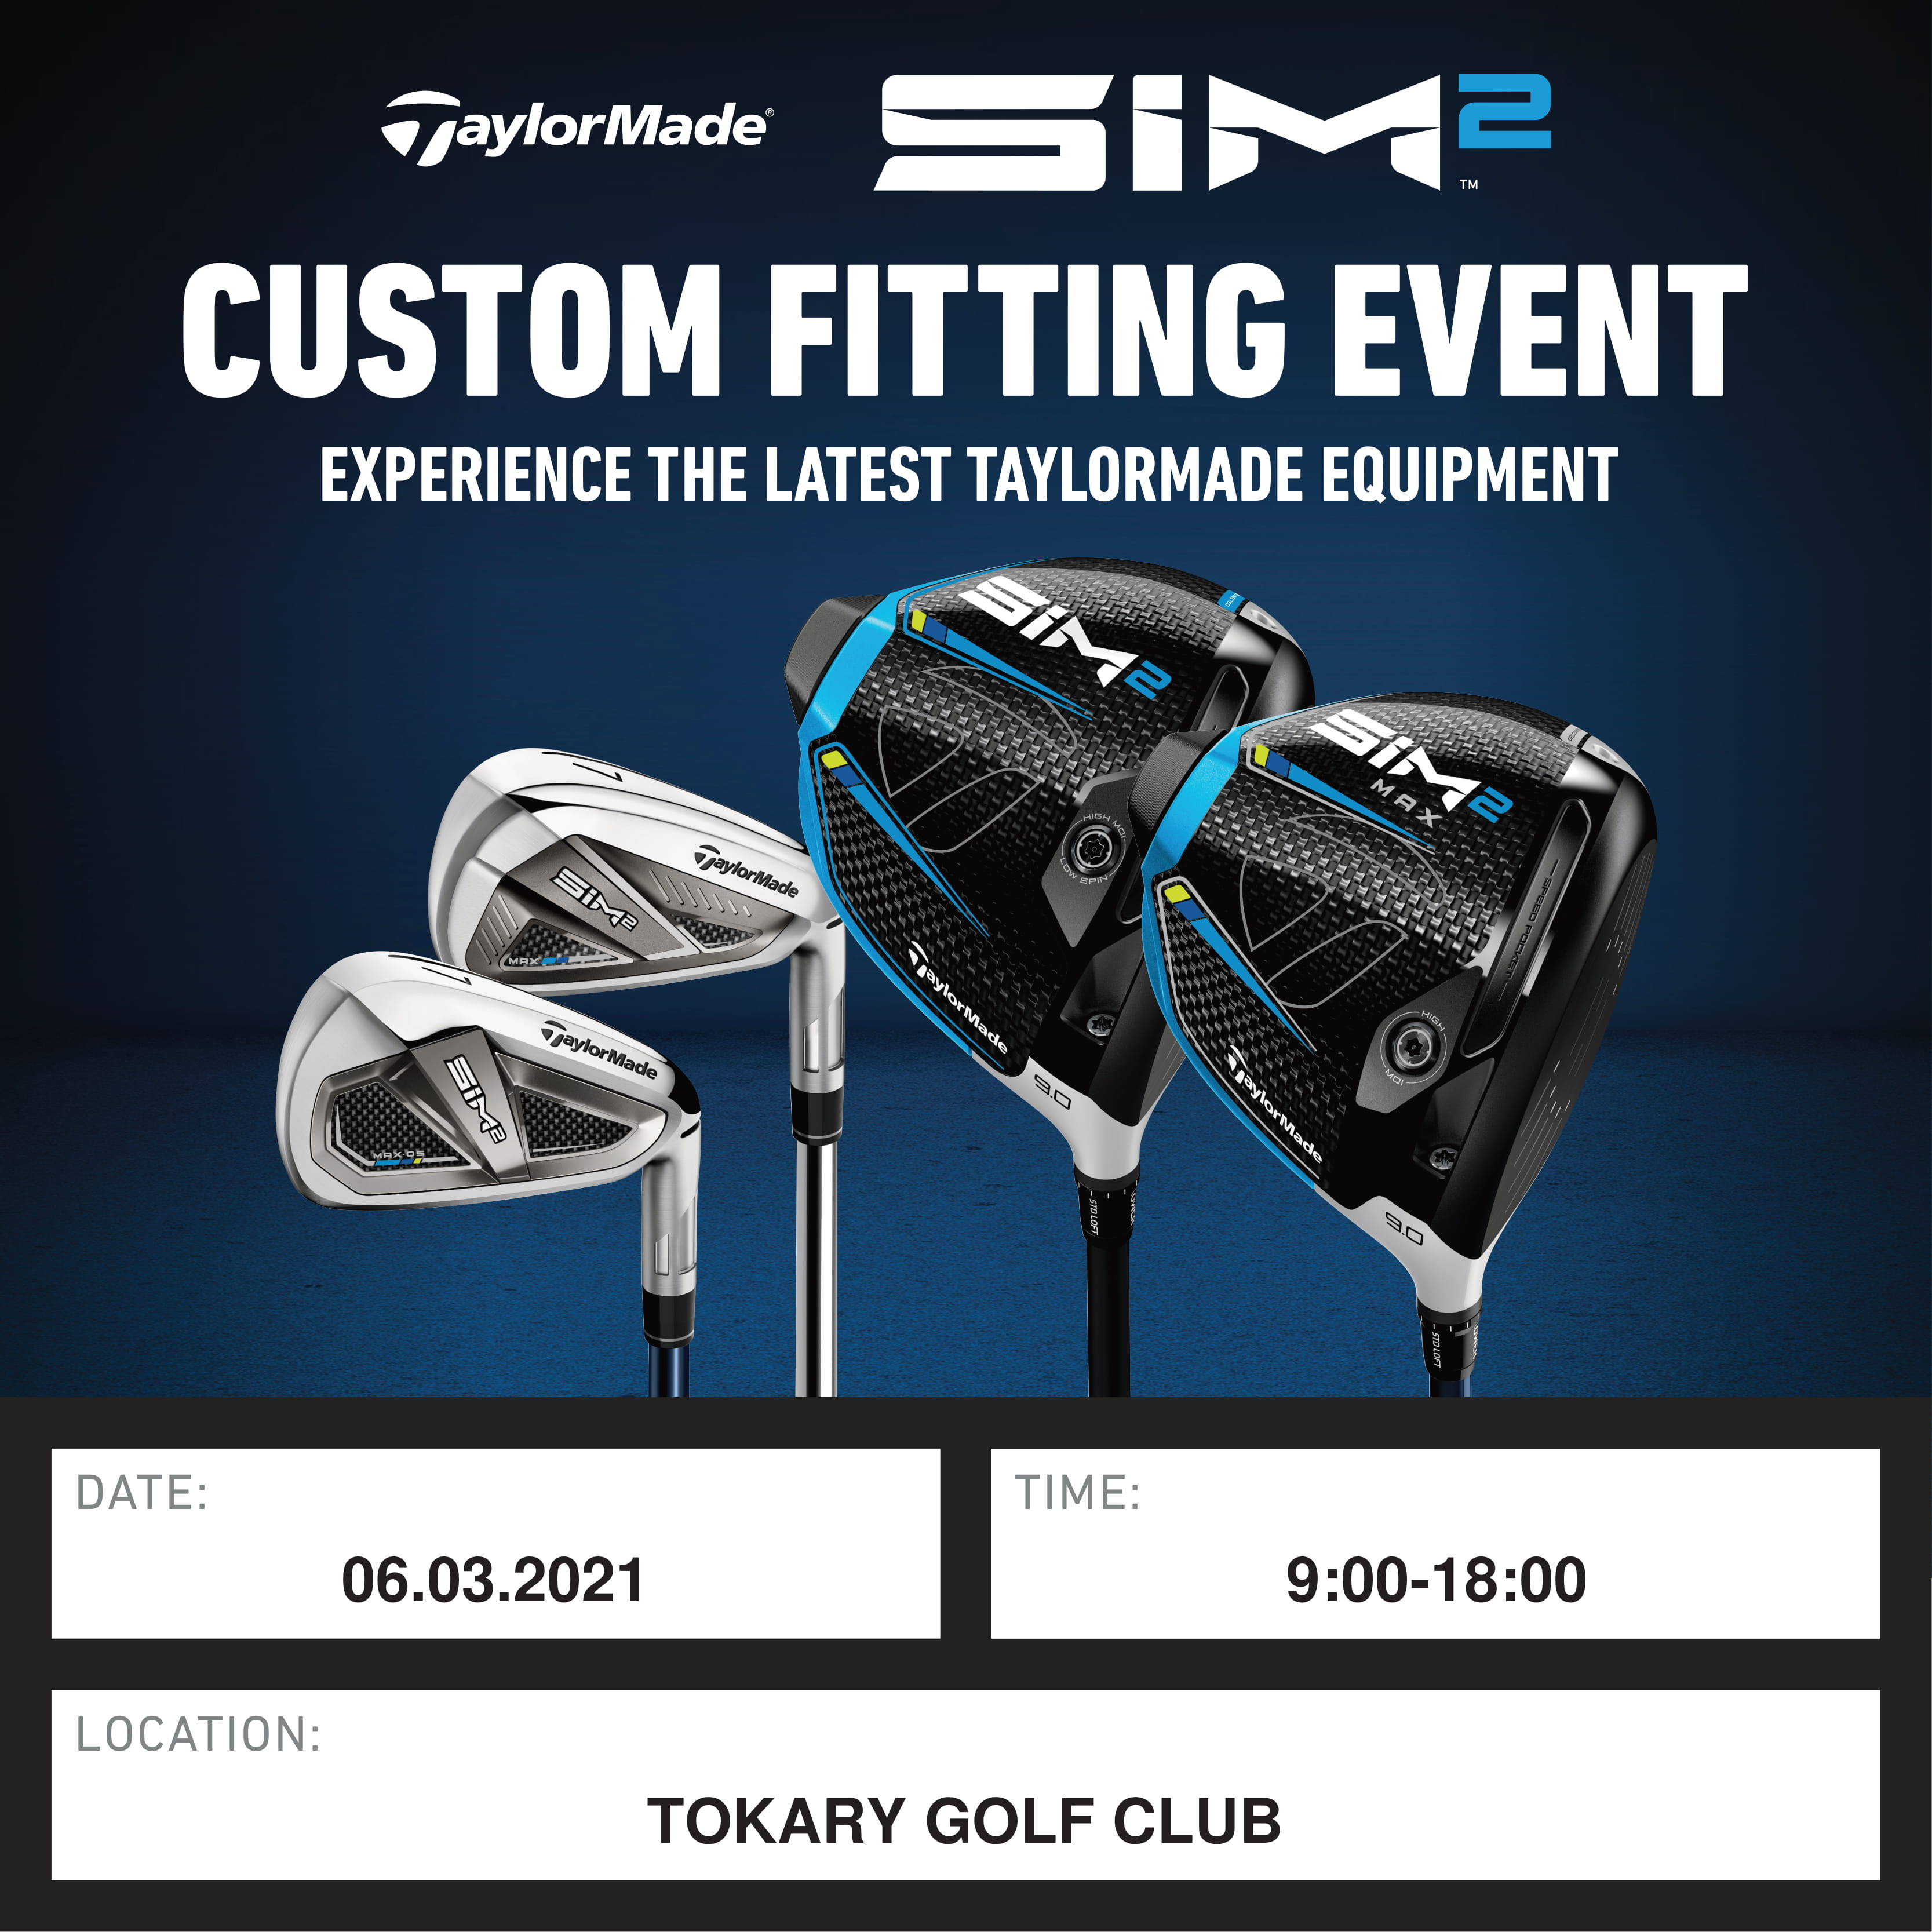 CUSTOM FITTING EVENT